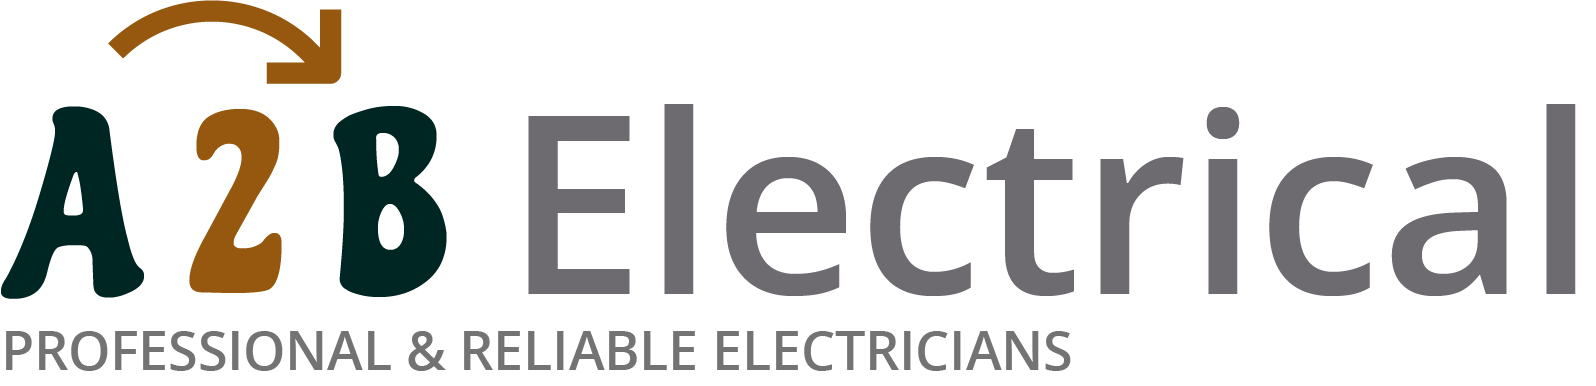 If you have electrical wiring problems in Belsize Park, we can provide an electrician to have a look for you.